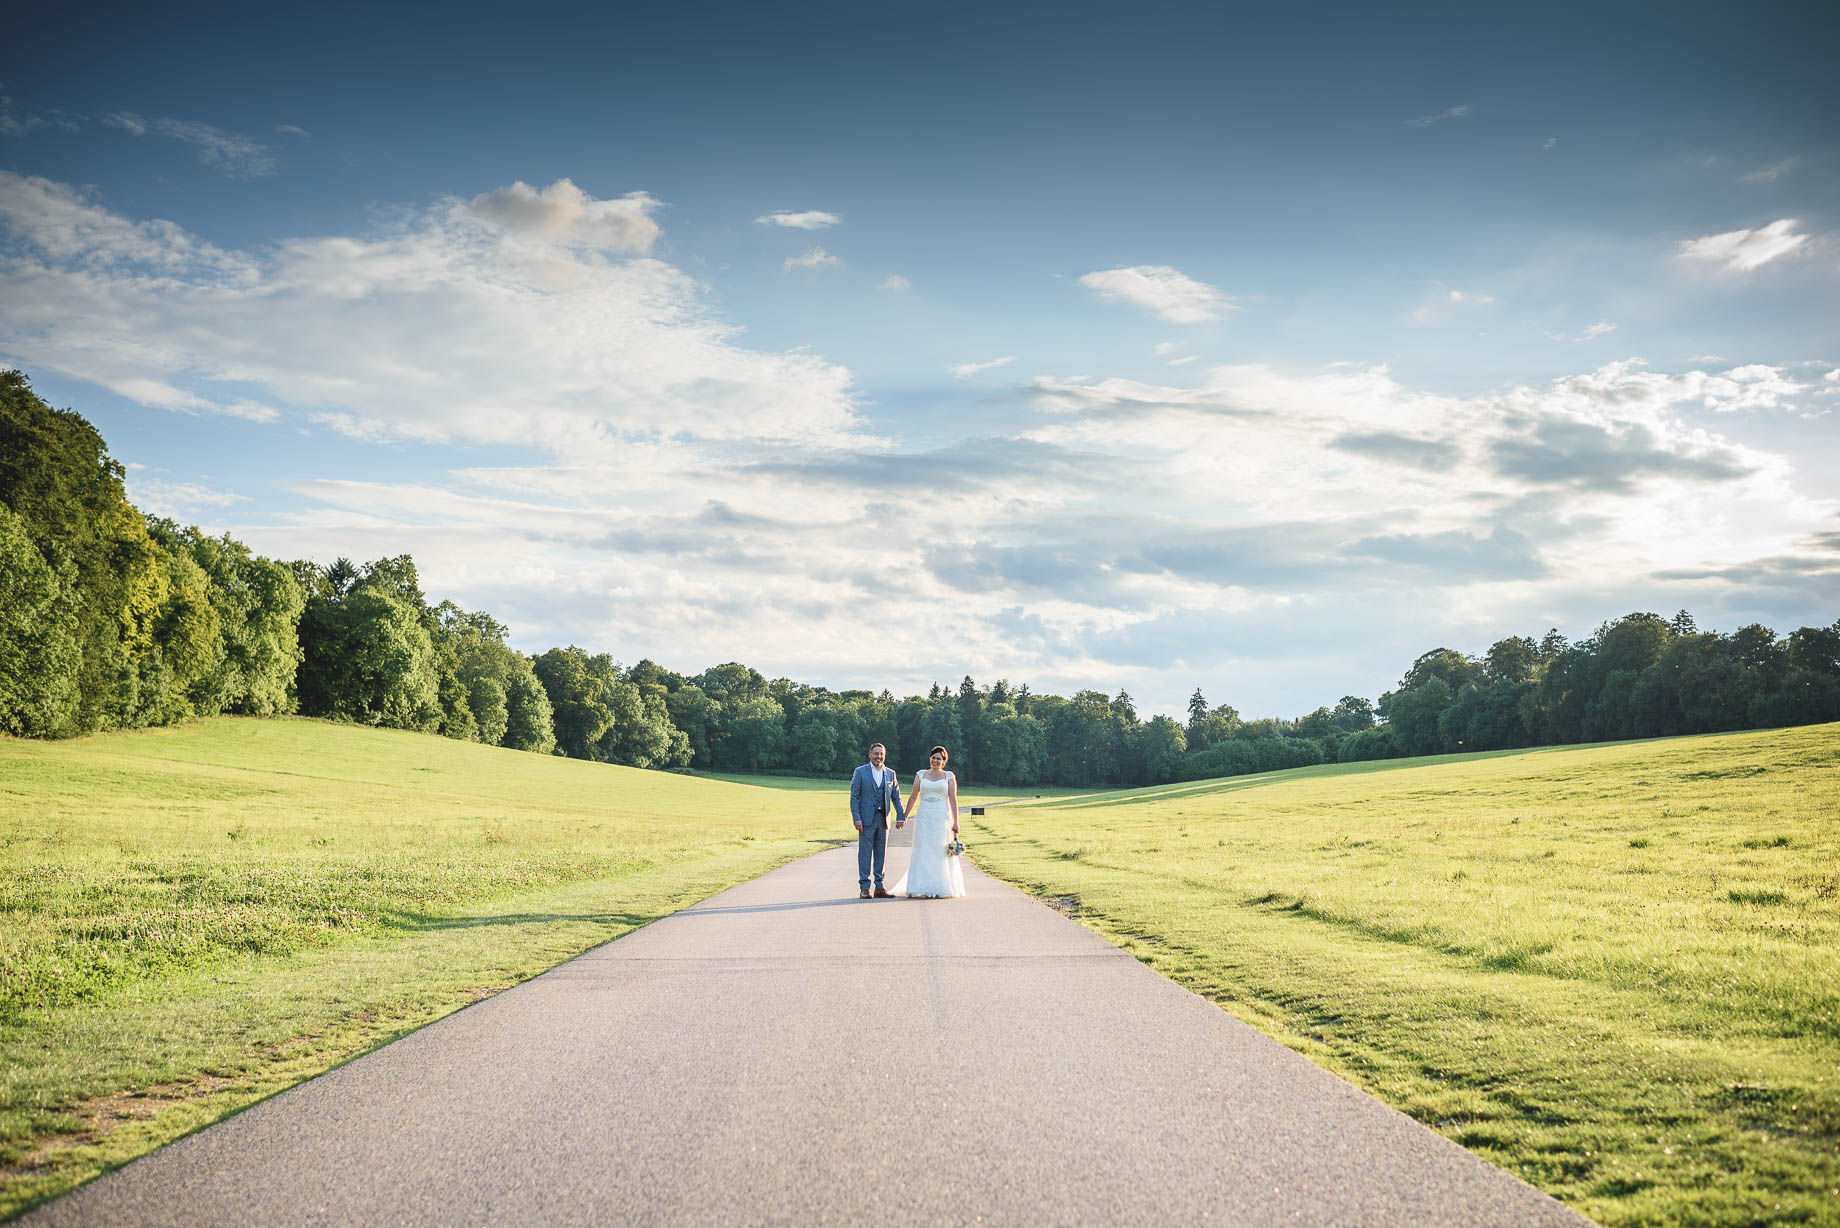 Luton Hoo wedding photography by Guy Collier Photography - Lauren and Gem (149 of 178)